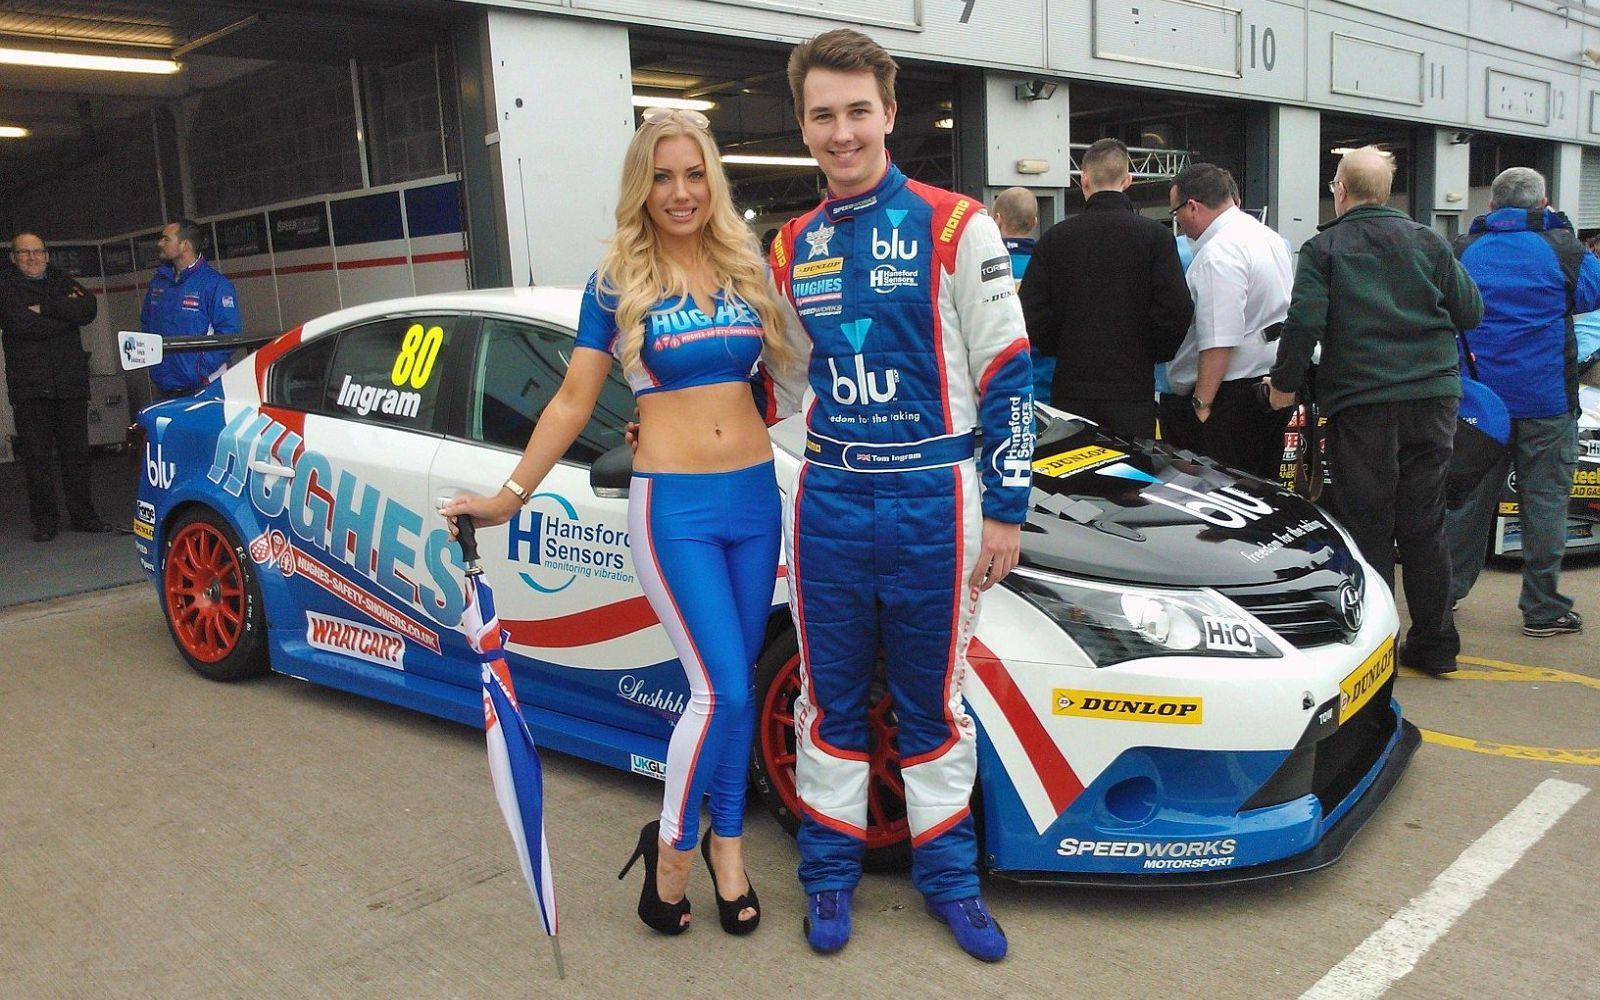 2014 Btcc Launches With Five Toyota Avensis Racecars